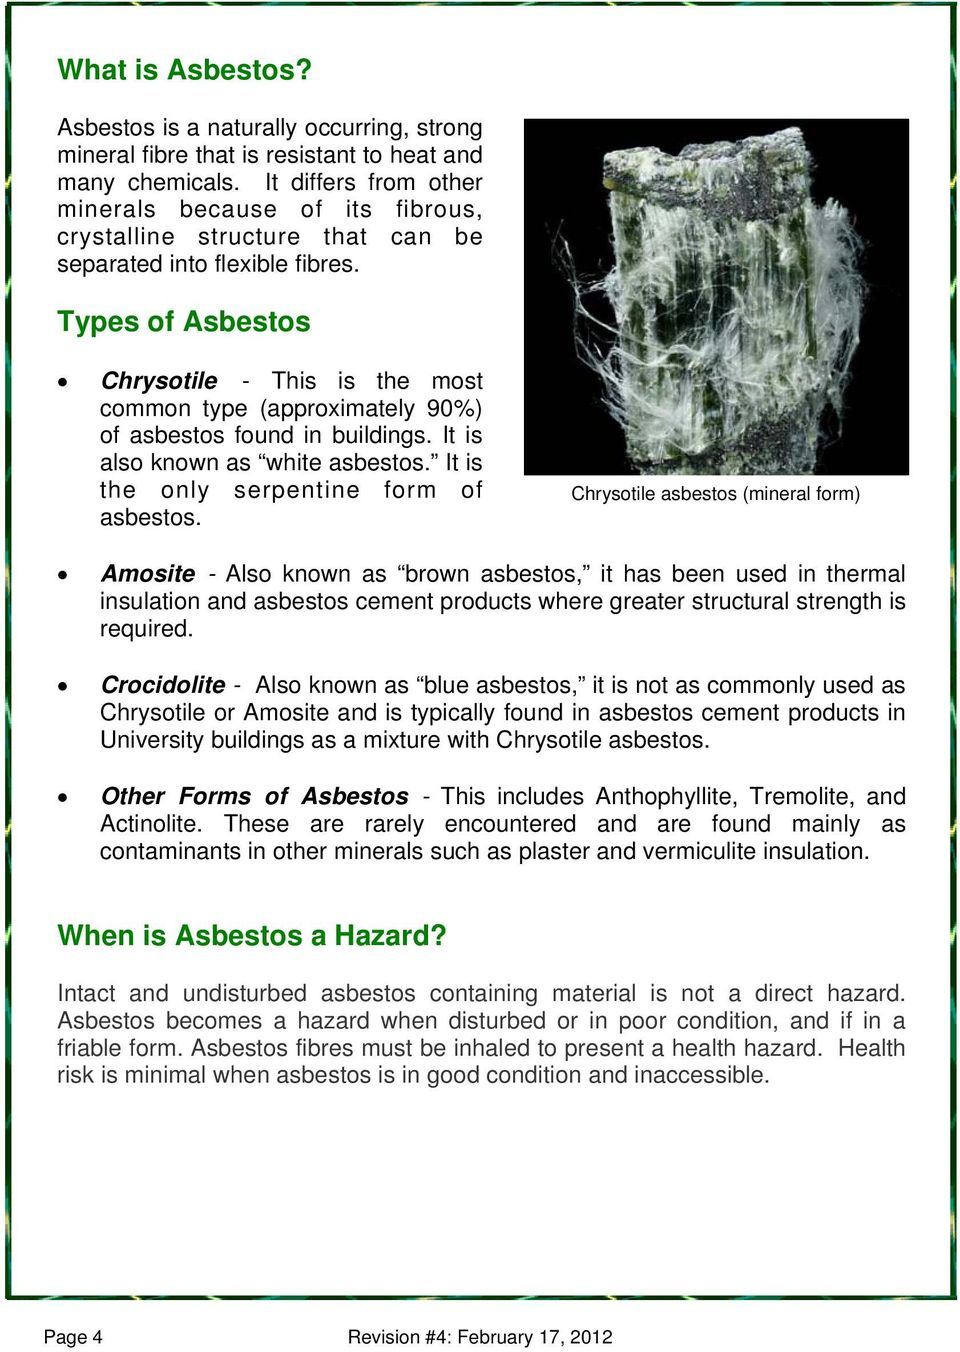 Types of Asbestos Chrysotile - This is the most common type (approximately 90%) of asbestos found in buildings. It is also known as white asbestos. It is the only serpentine form of asbestos.